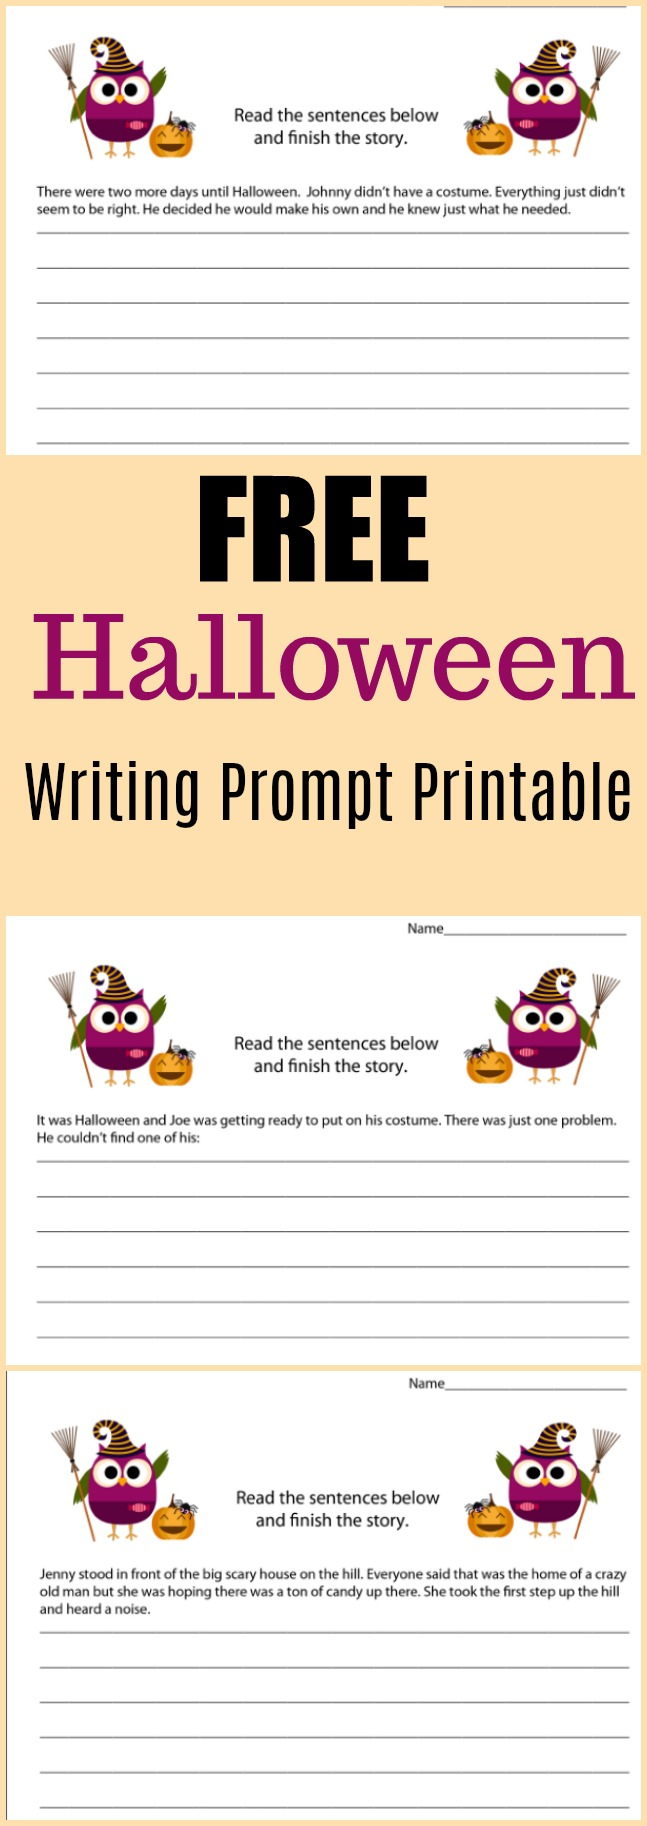 Free Halloween Writing Prompt Printable - #writing #writingprompt #holiday #printable #freeprintable #education #edchat #homeschool #homeschooling #halloween